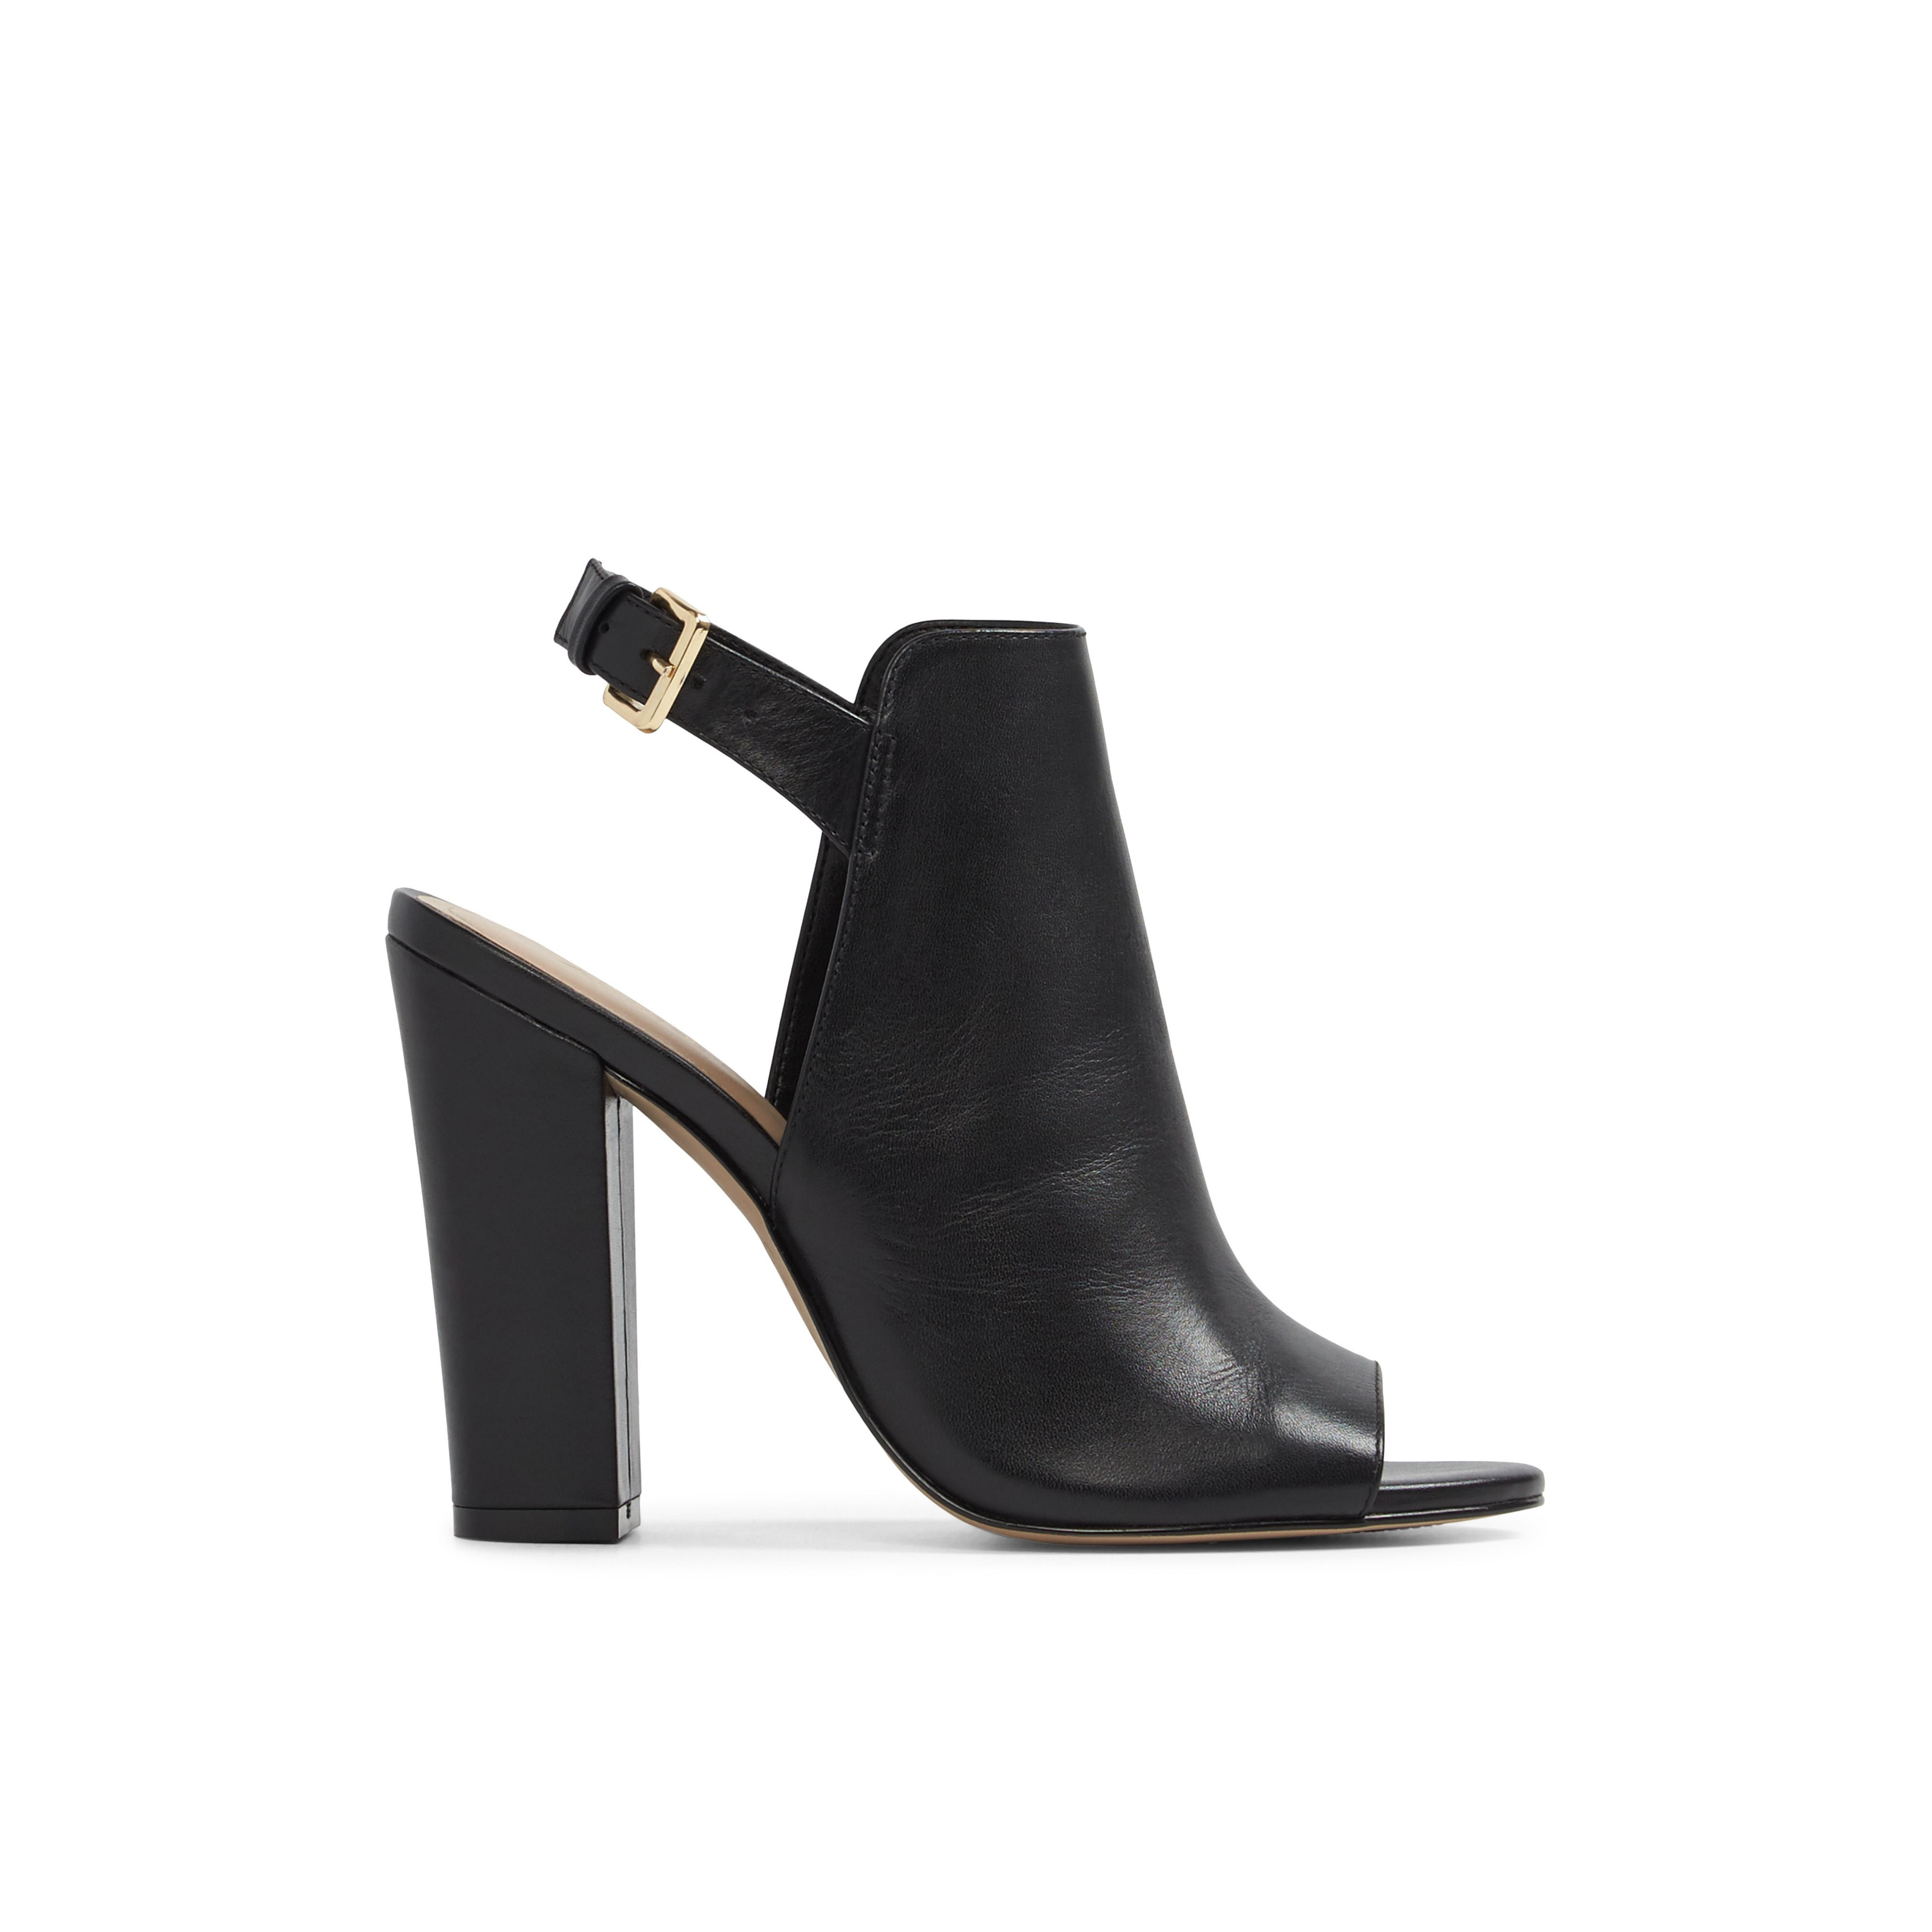 pin sandals shoeshigh tom ford sandal napa and evening simple strap heels